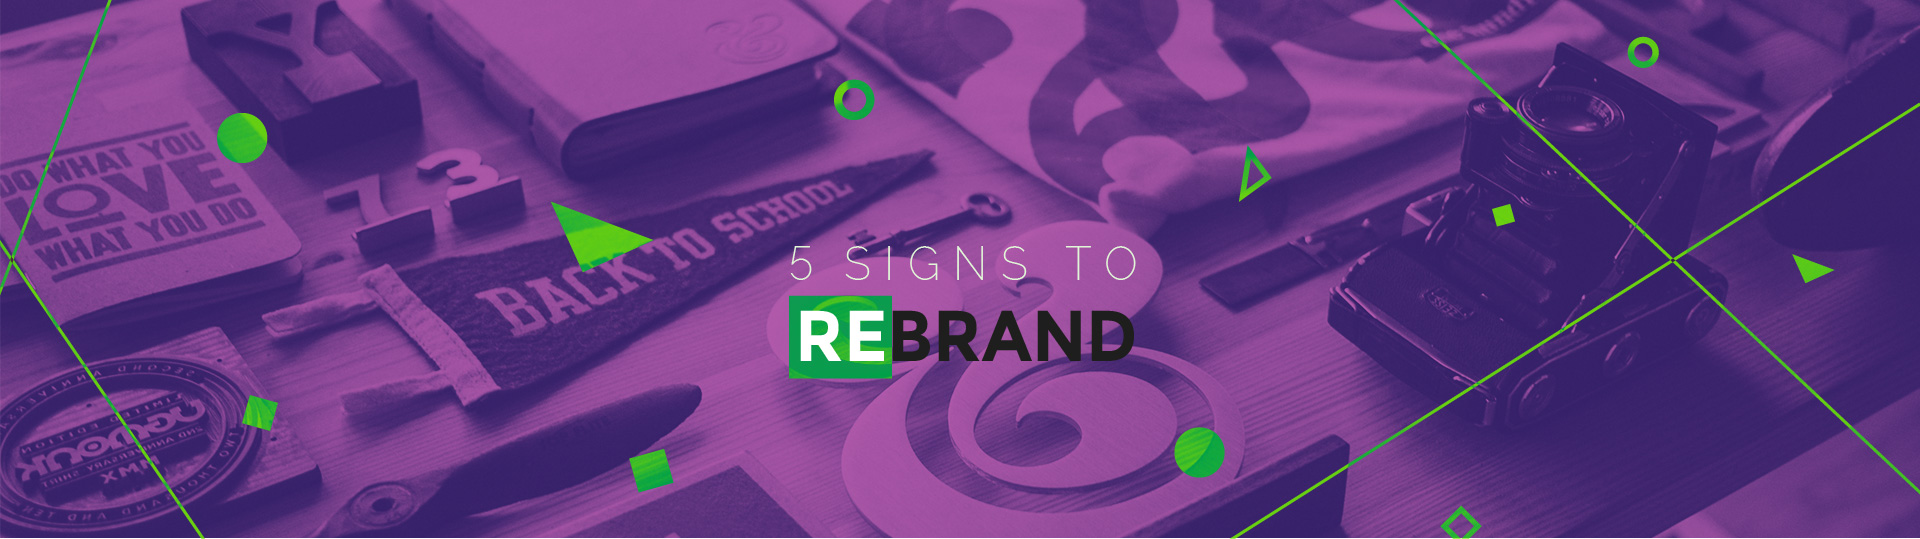 5 Signs Your Business Needs To Rebrand